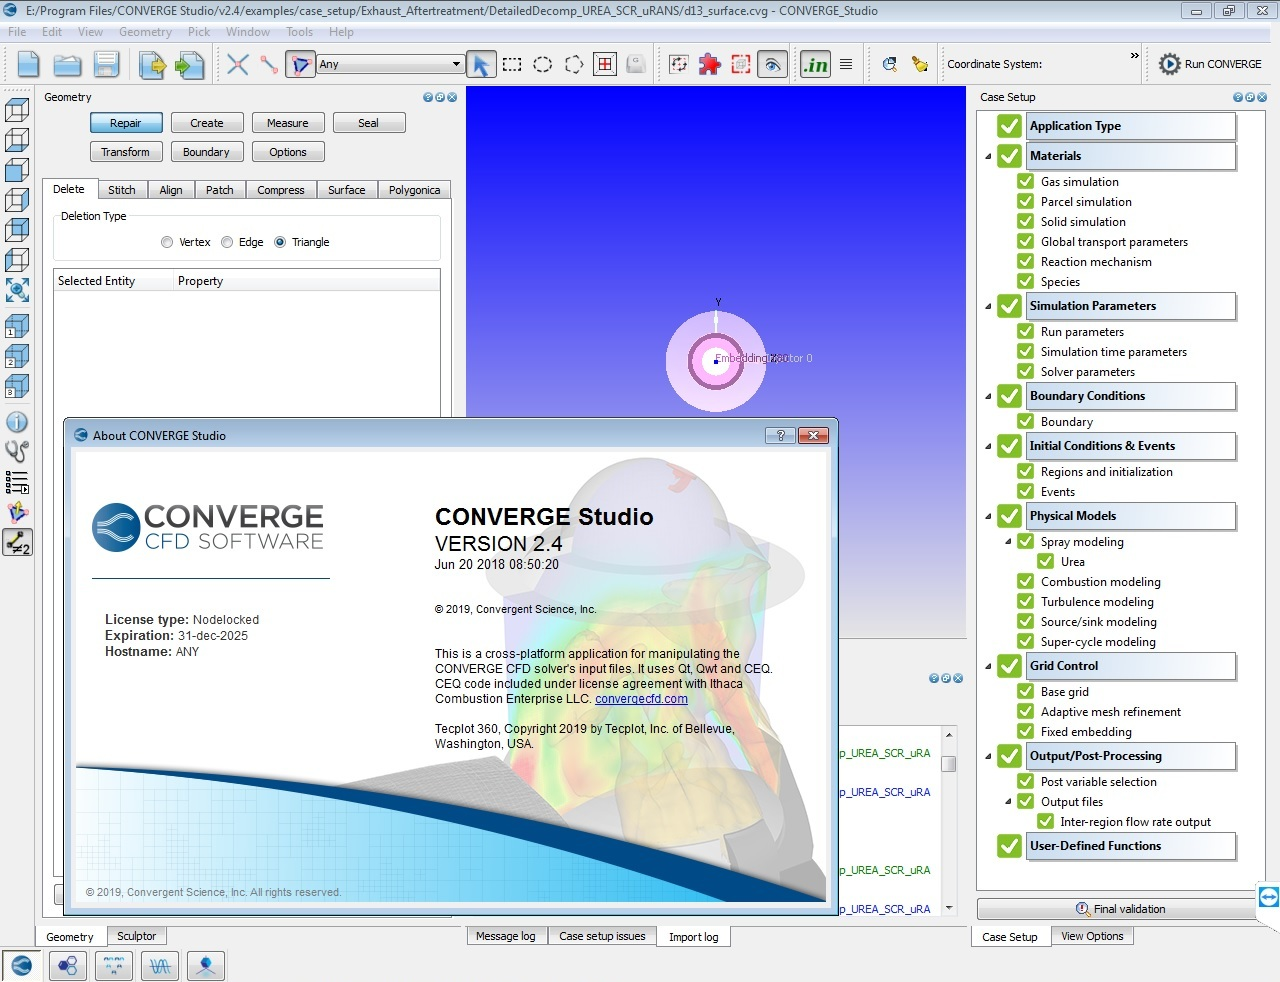 working with CONVERGE 2.4.19 datecode 20.06.2018 full